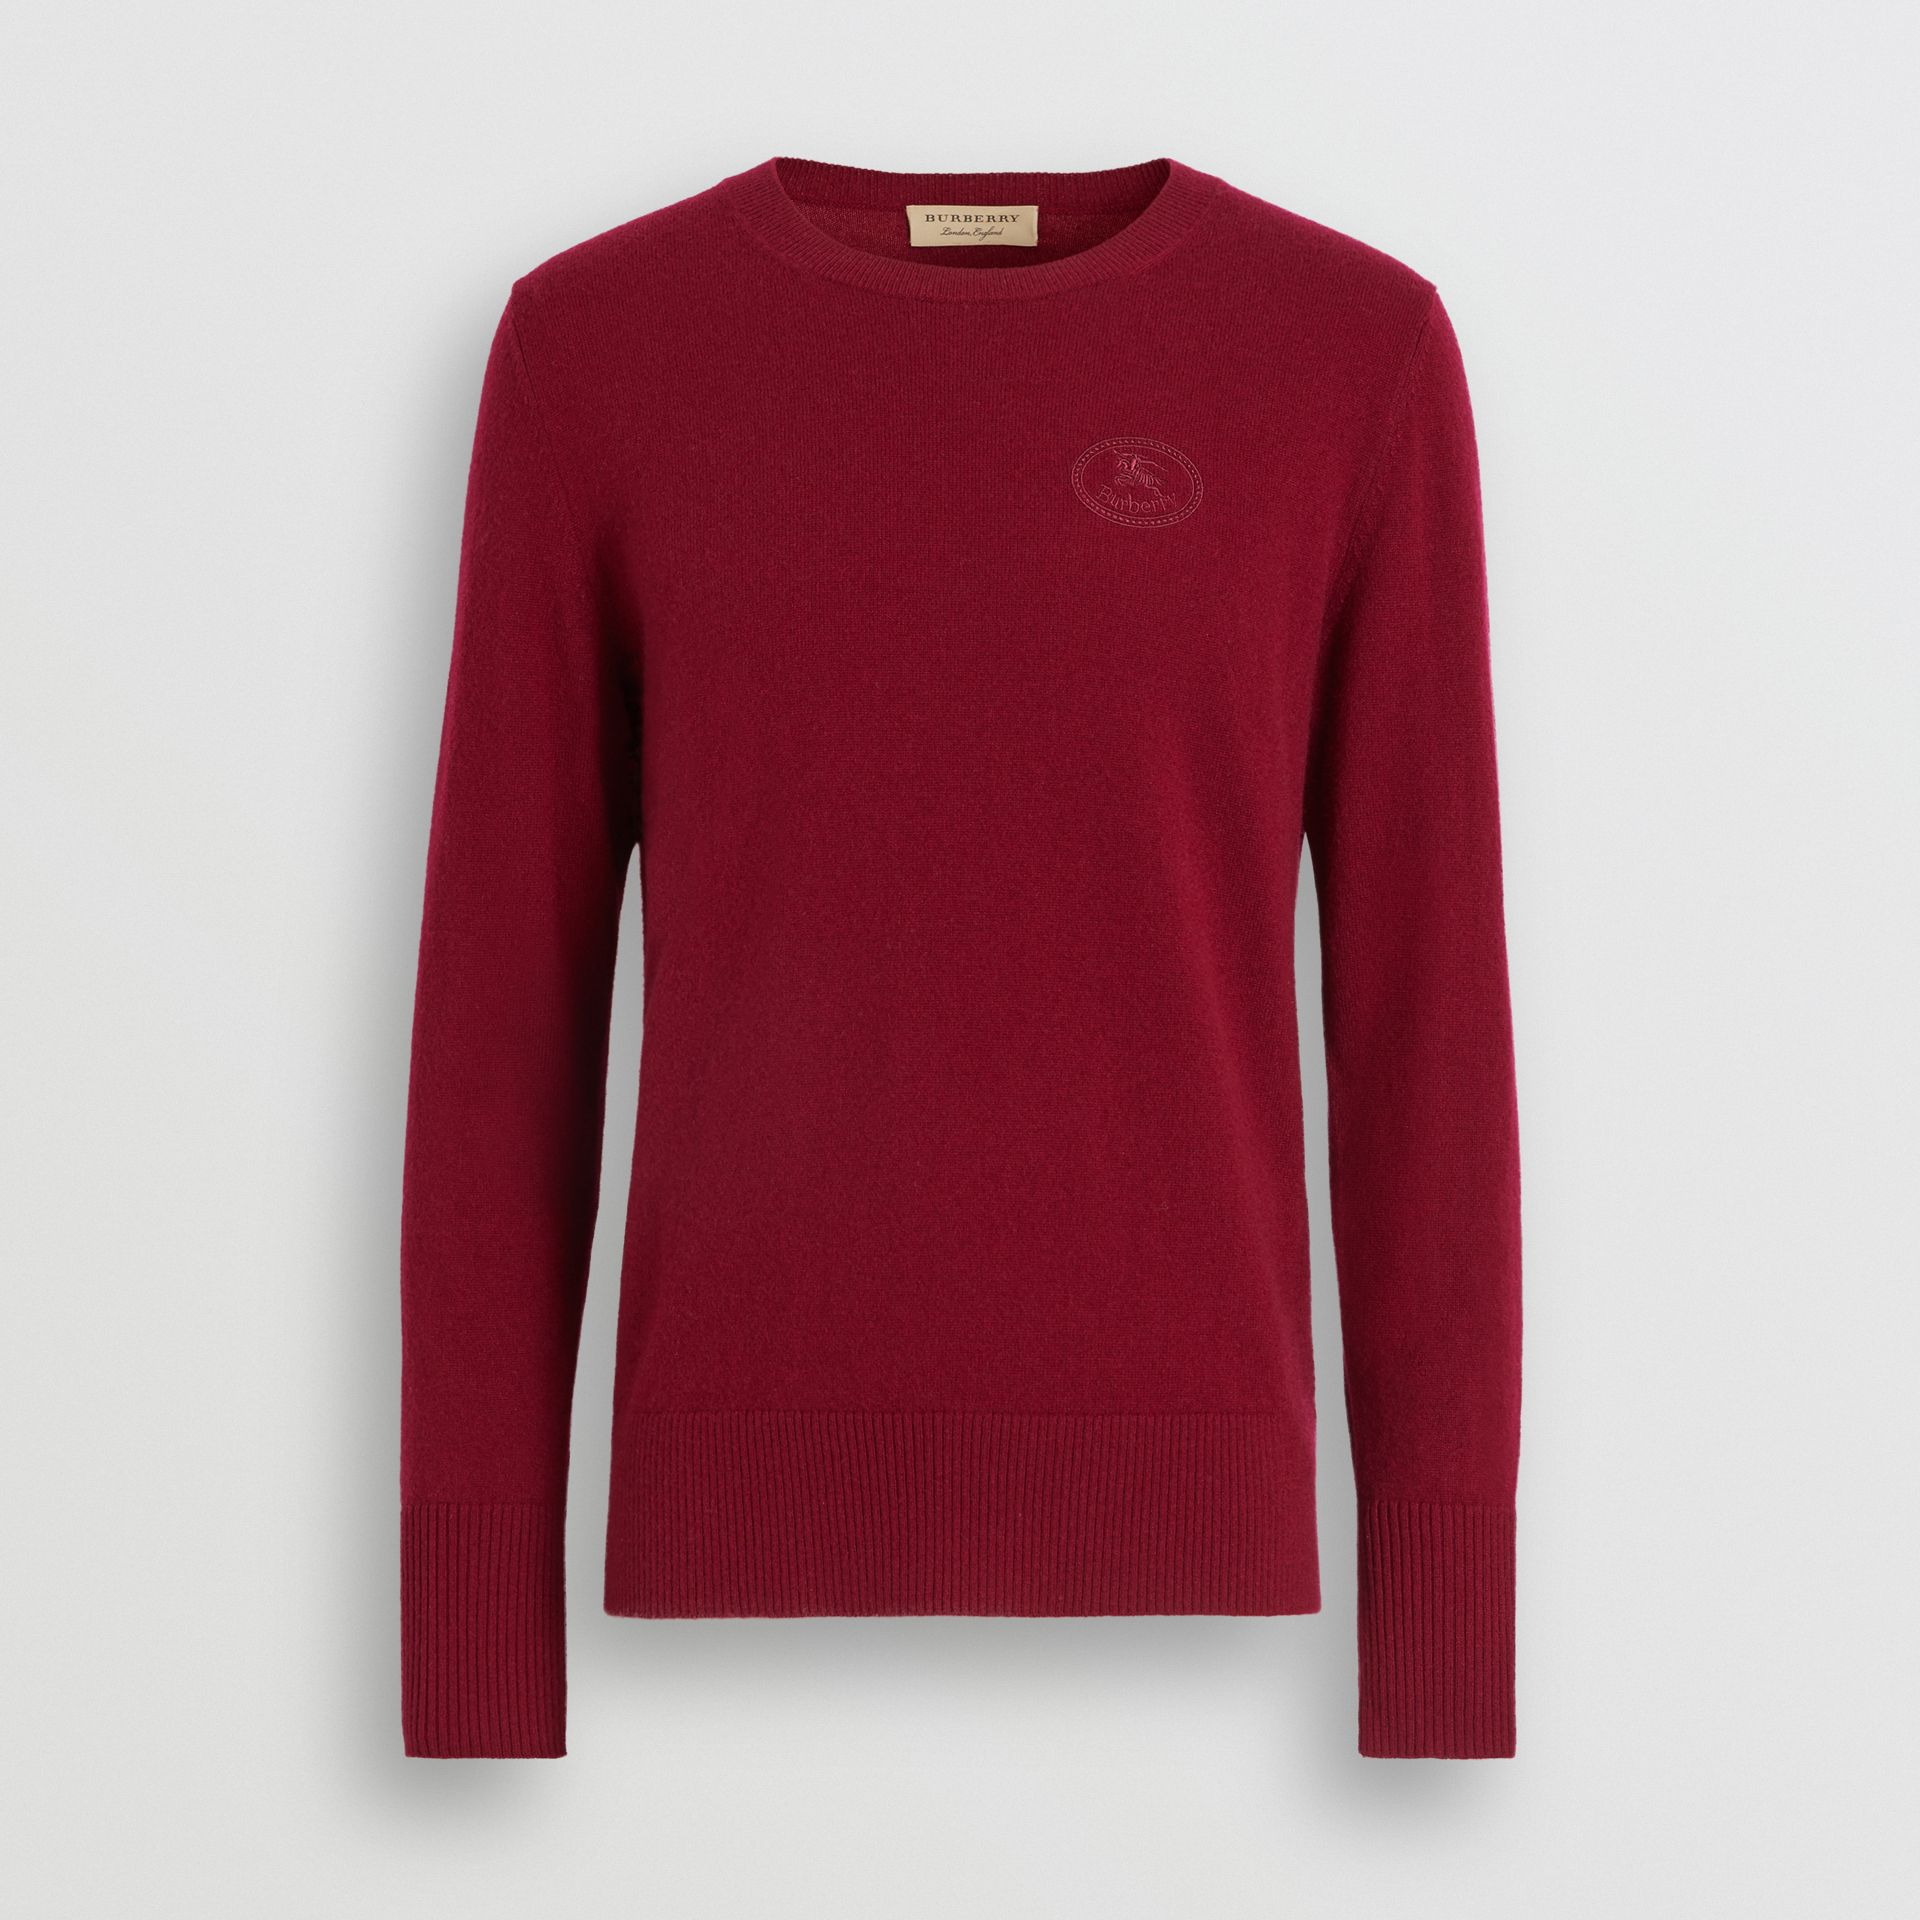 Embroidered Logo Cashmere Sweater in Claret - Men | Burberry - gallery image 3